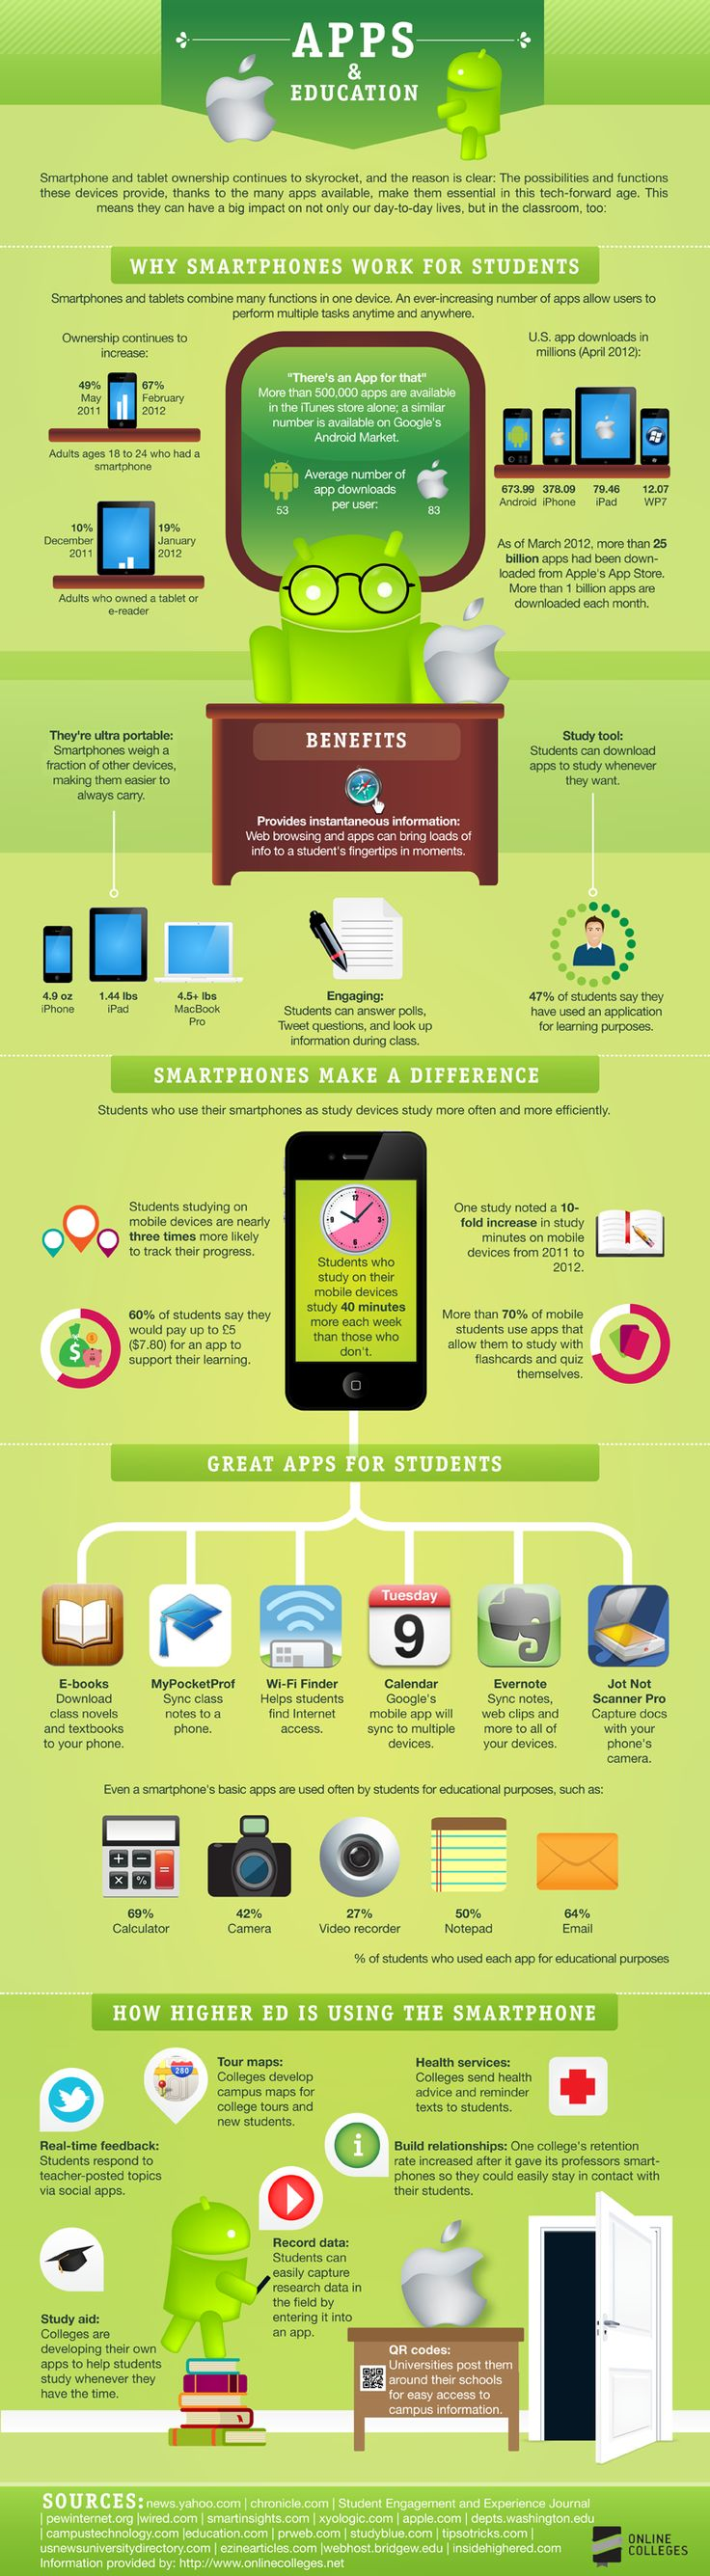 Infographic: Apps and Education - Why smartphones work for students & how they make a difference #edtech